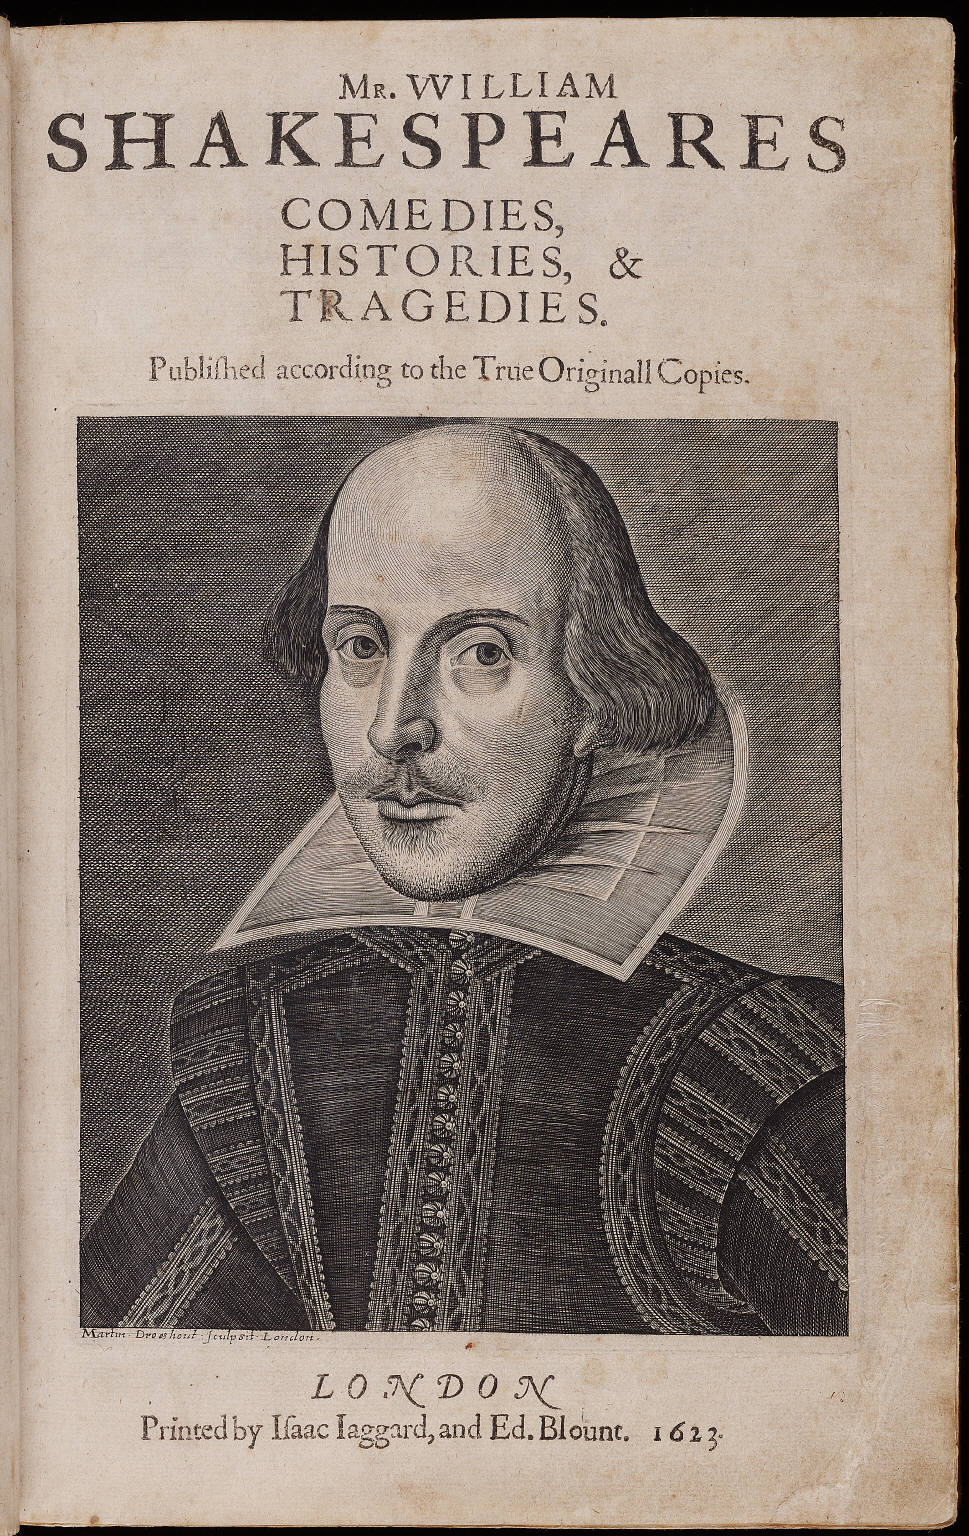 Shakespeares The tragedie of Julius Caesar - newly printed from the First Folio of 1623.